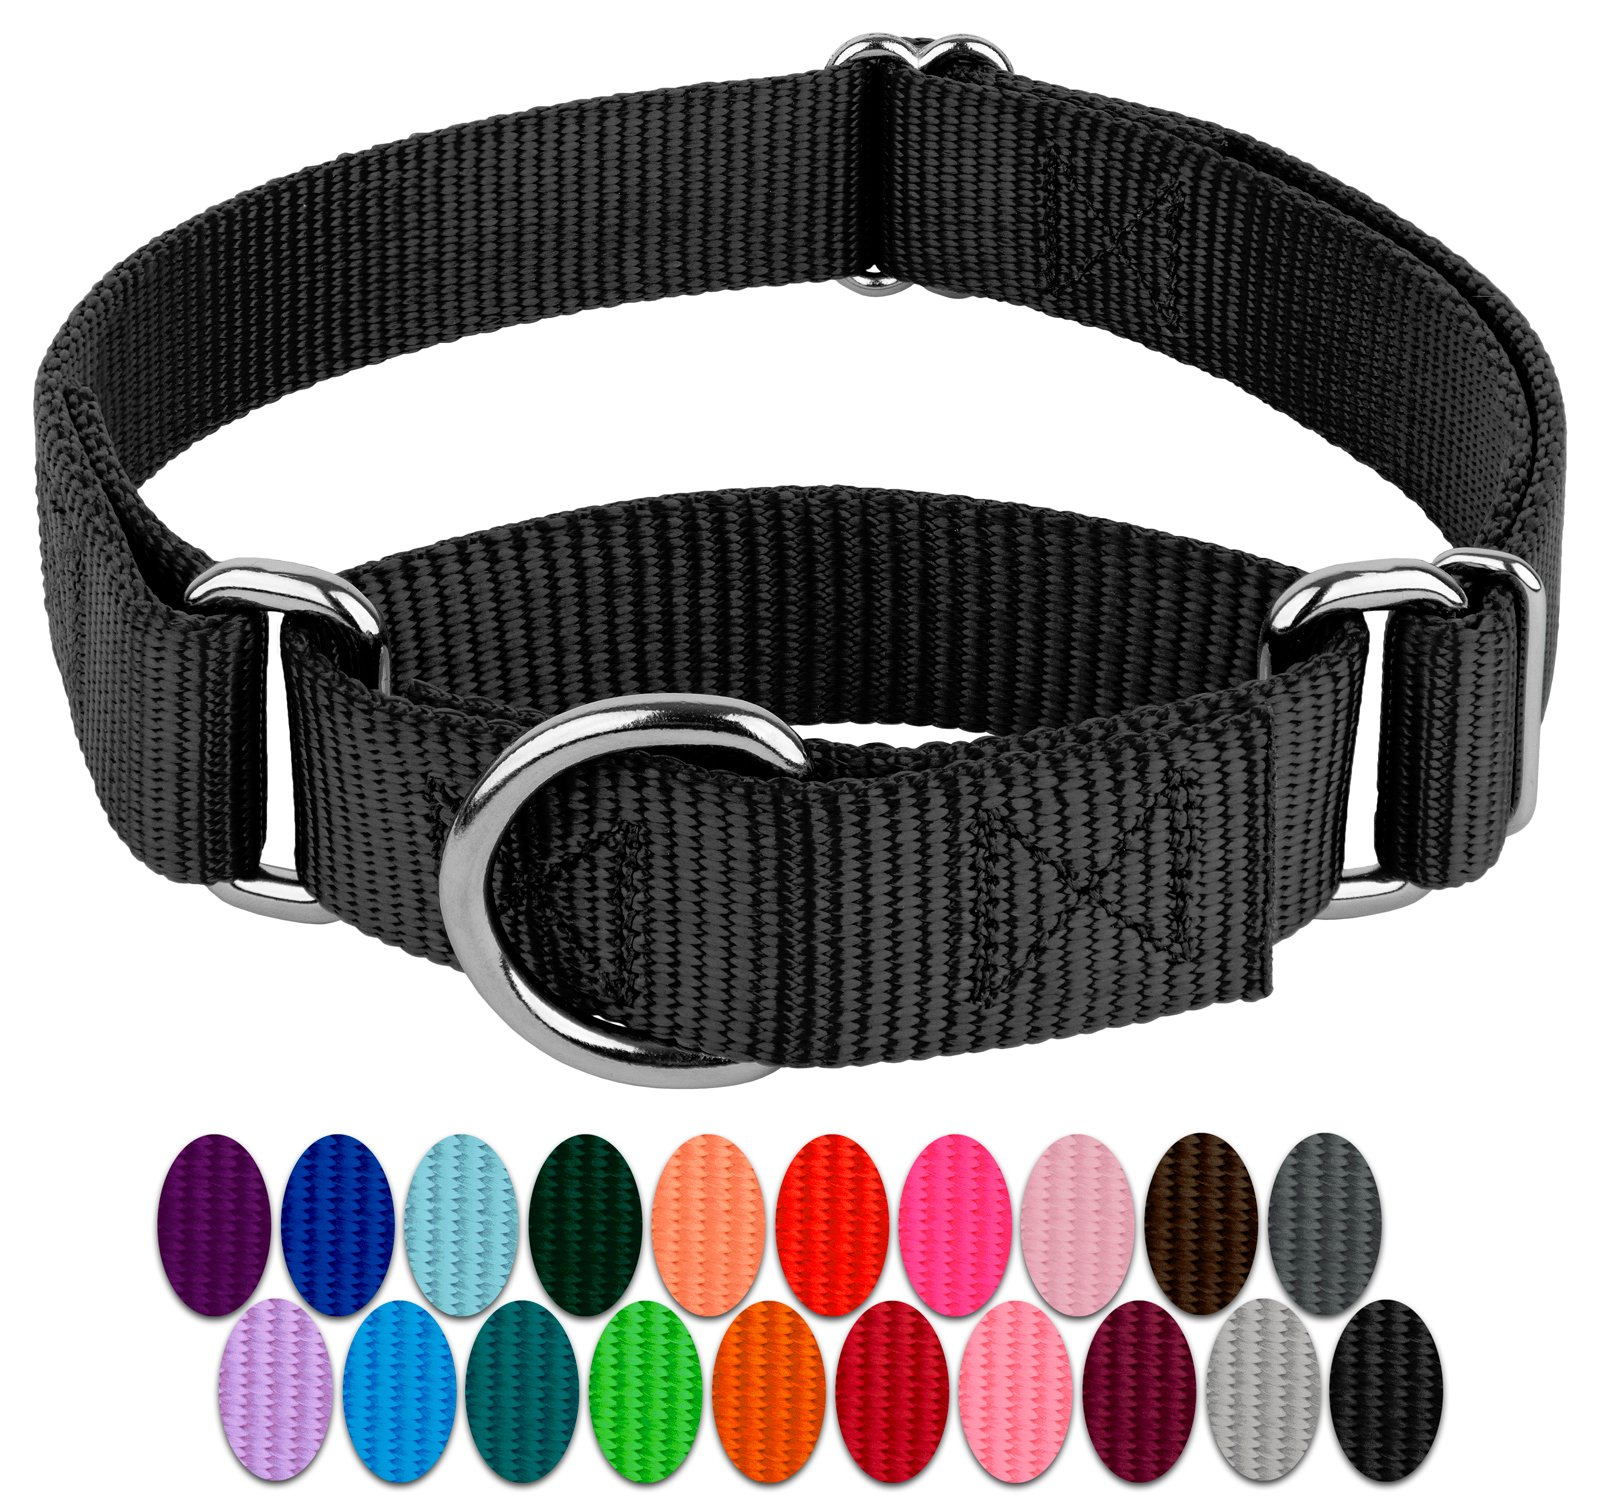 c92e49af03 Country Brook Design | Martingale Heavyduty Nylon Dog Collar product image